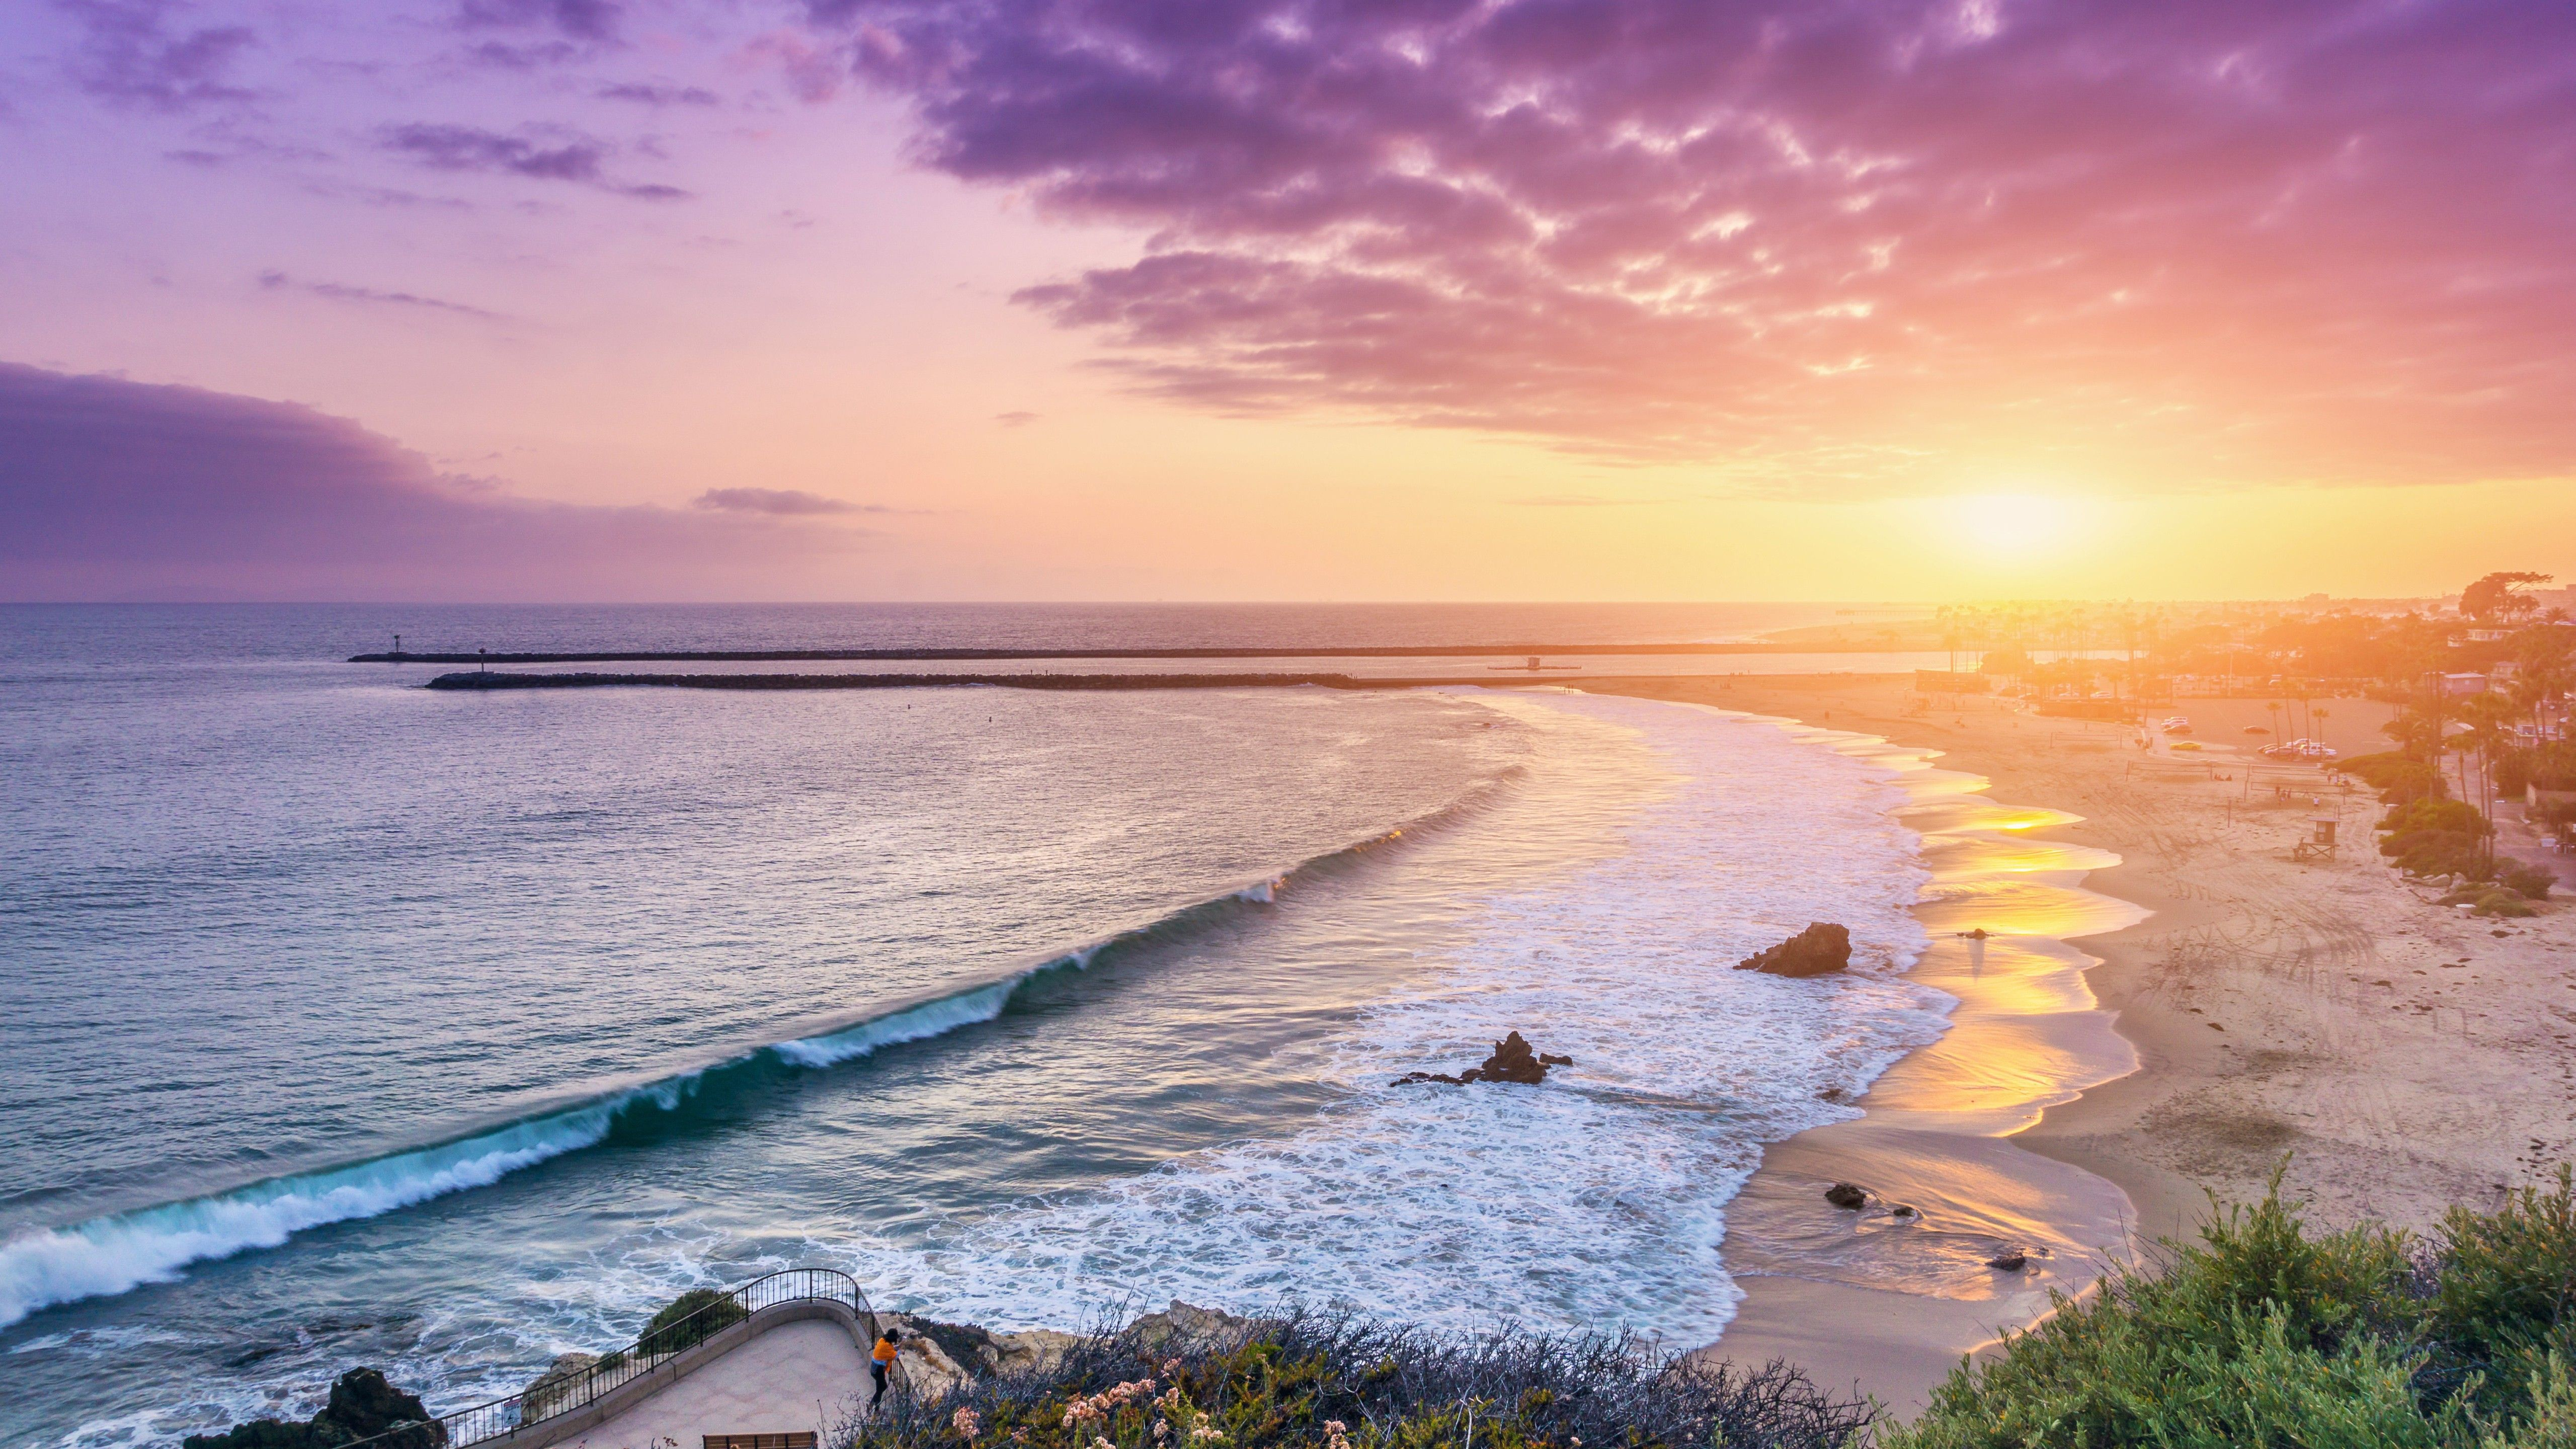 Cute Beach Backgrounds Posted By Sarah Sellers